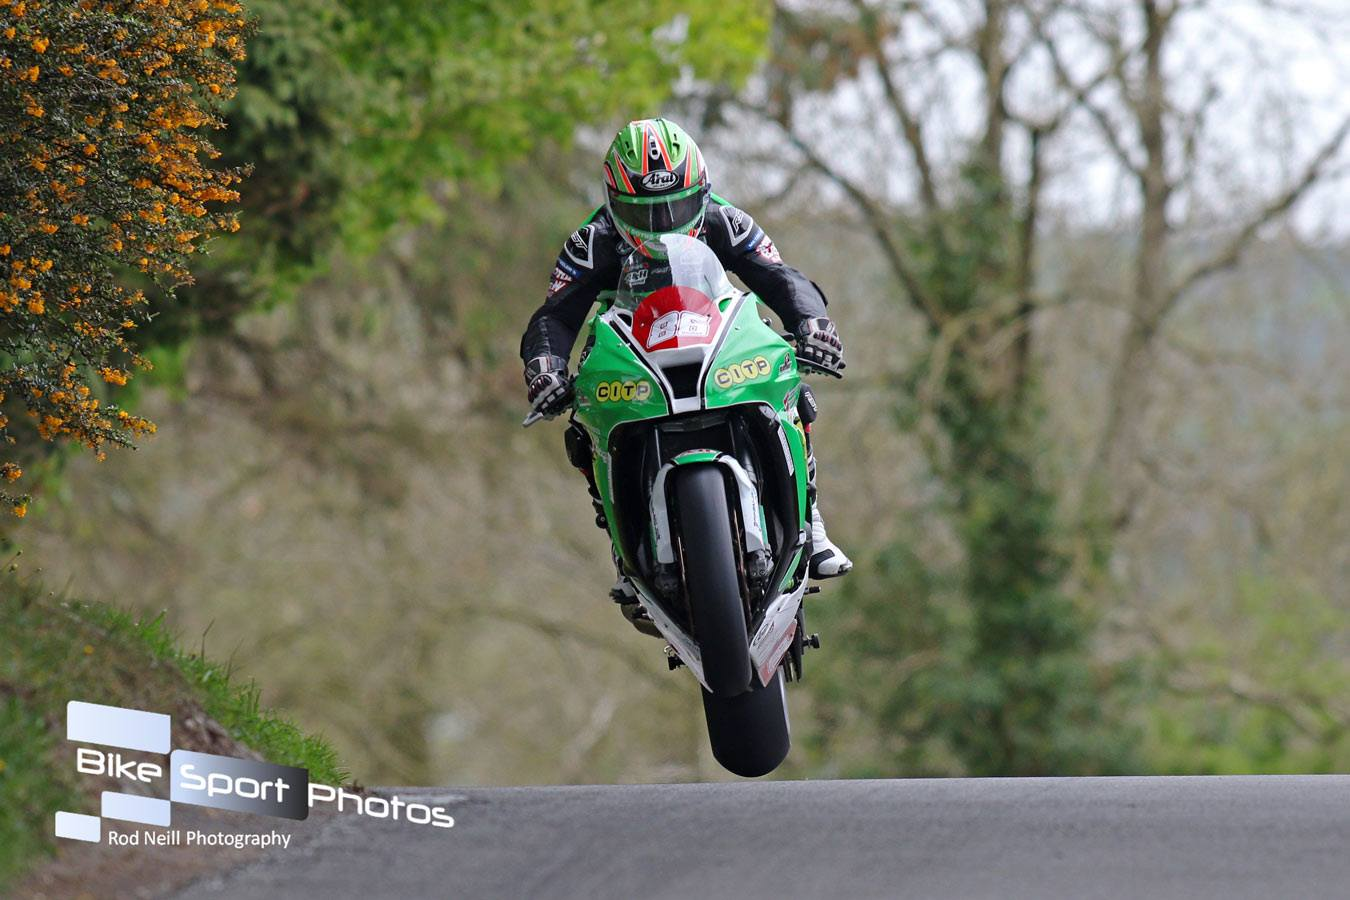 KDM Hire Cookstown 100: McGee Secures Man Of The Meeting Accolade